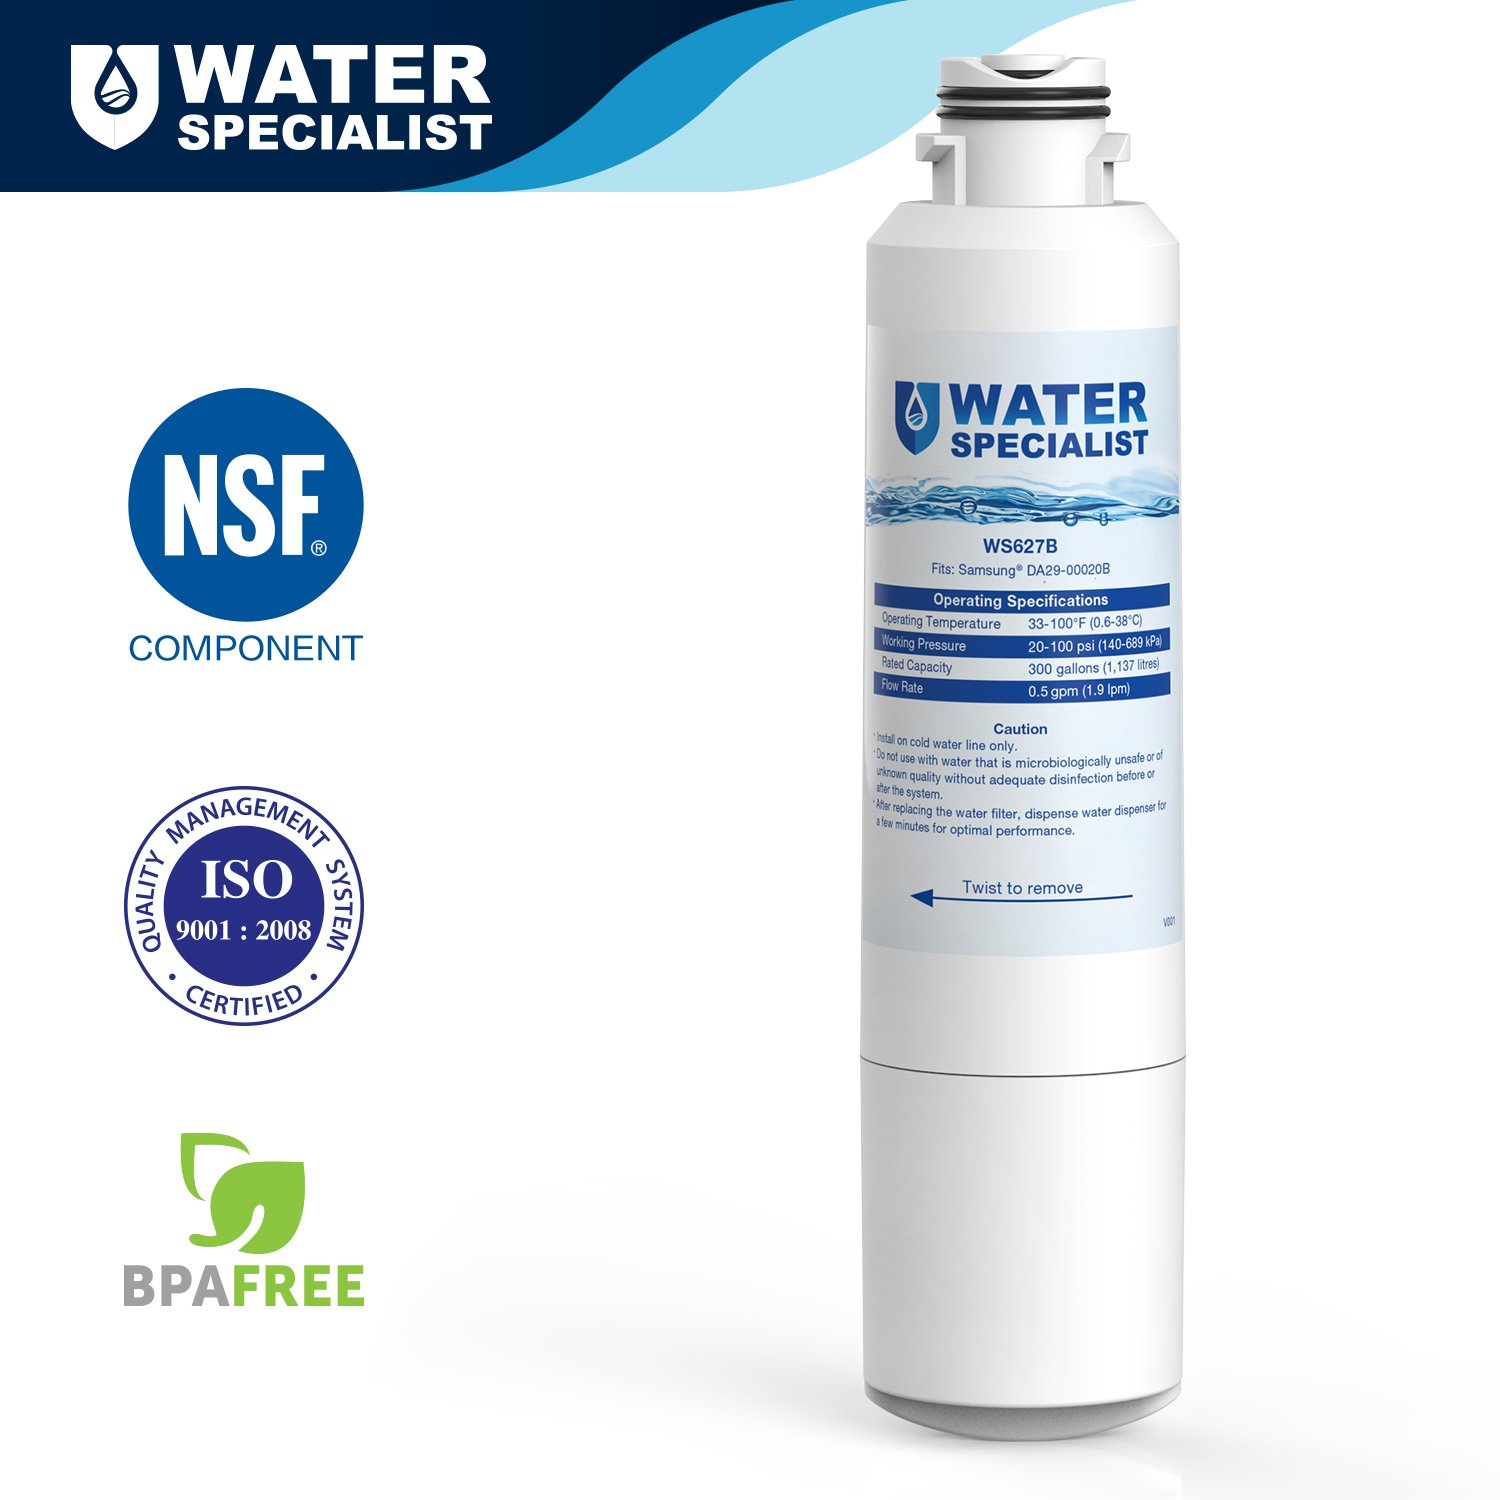 Details about Waterspecialist Refrigerator Water Filter, Replacement for  Samsung